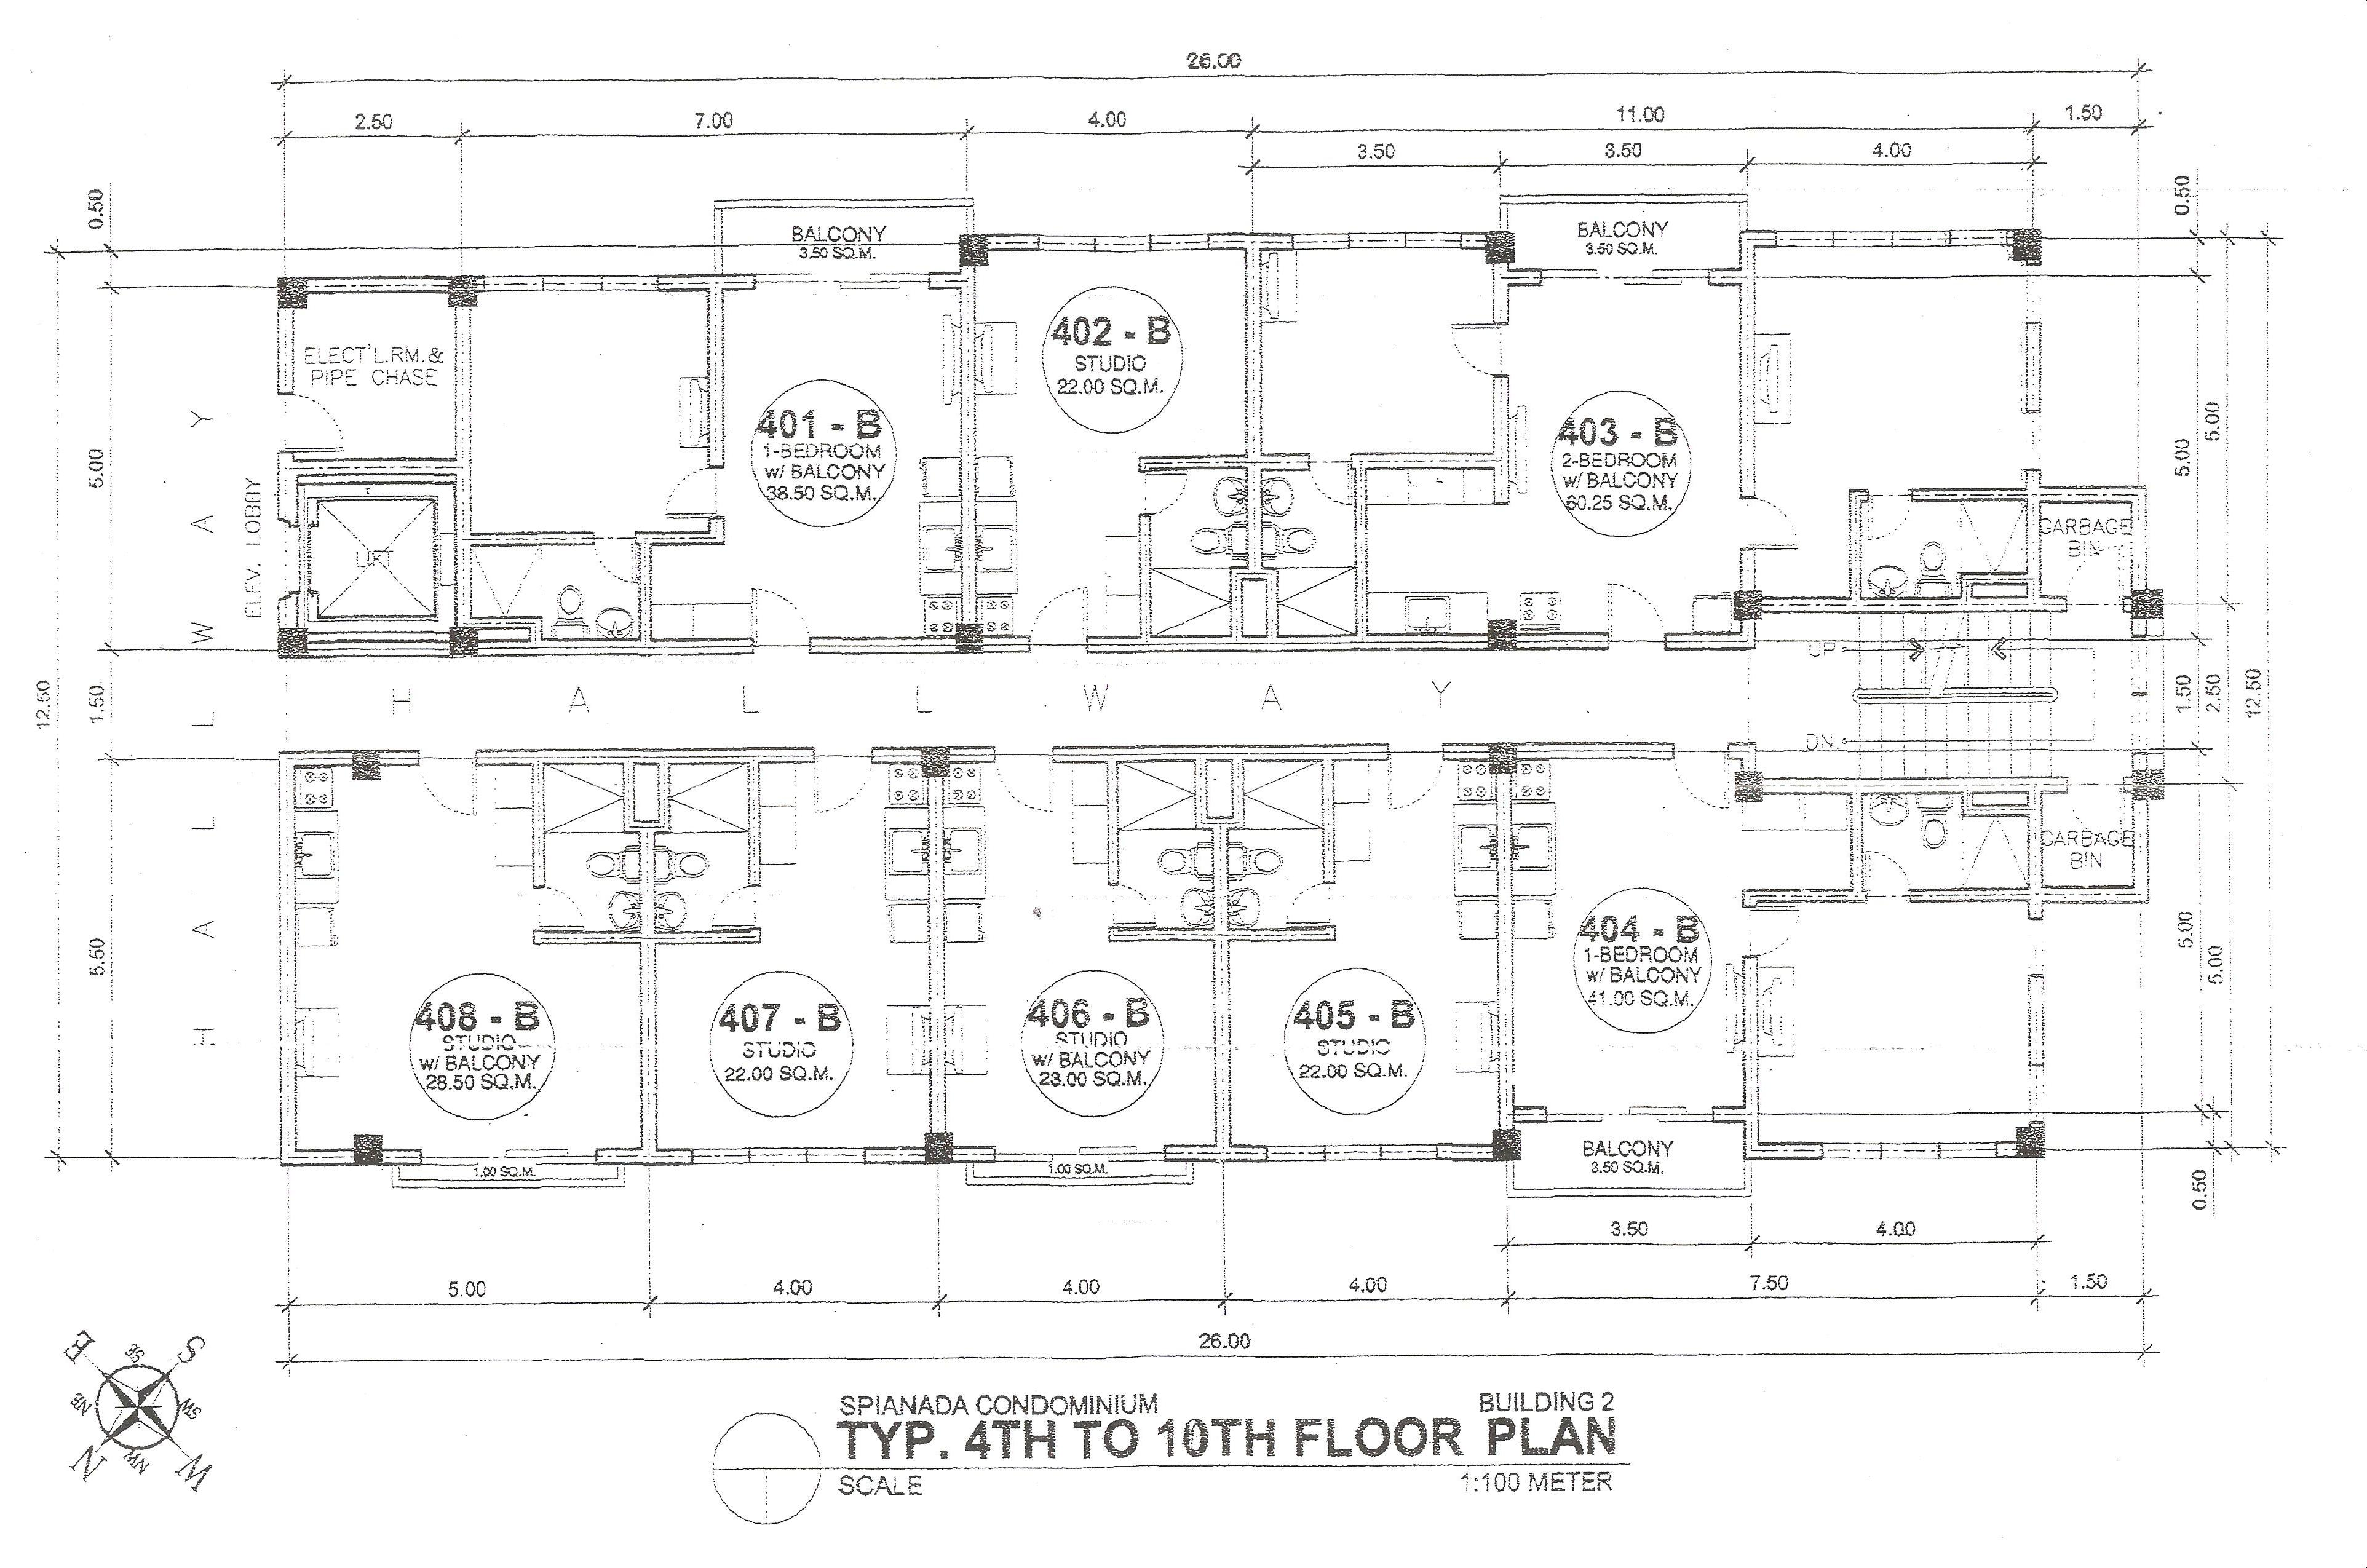 Building B 4th-10th Floor Plan